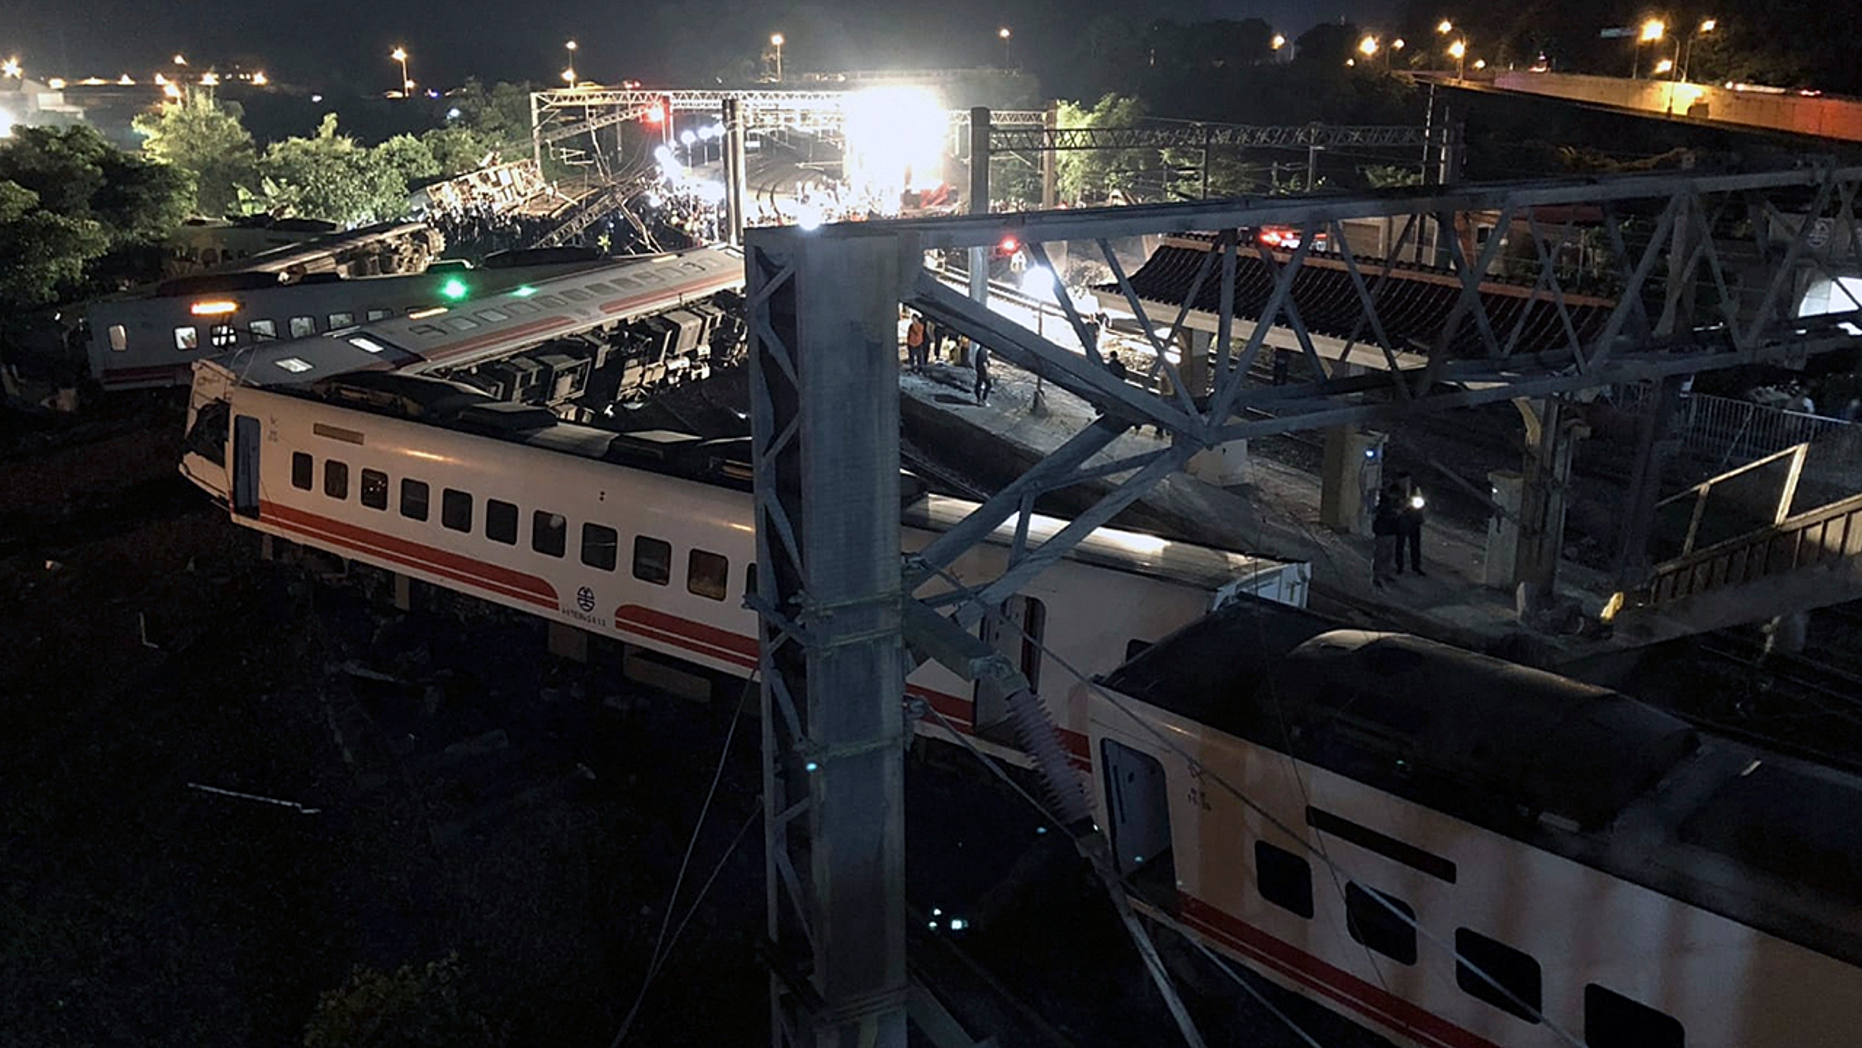 This photo released by Military News Agency shows a general view at the site of a train derailment in Lian in northern Taiwan on Sunday, Oct. 21 2018. The Puyuma express train was carrying more than 300 passengers toward Taitung, a city on Taiwan's southeast coast, when it went off the tracks on Sunday afternoon.